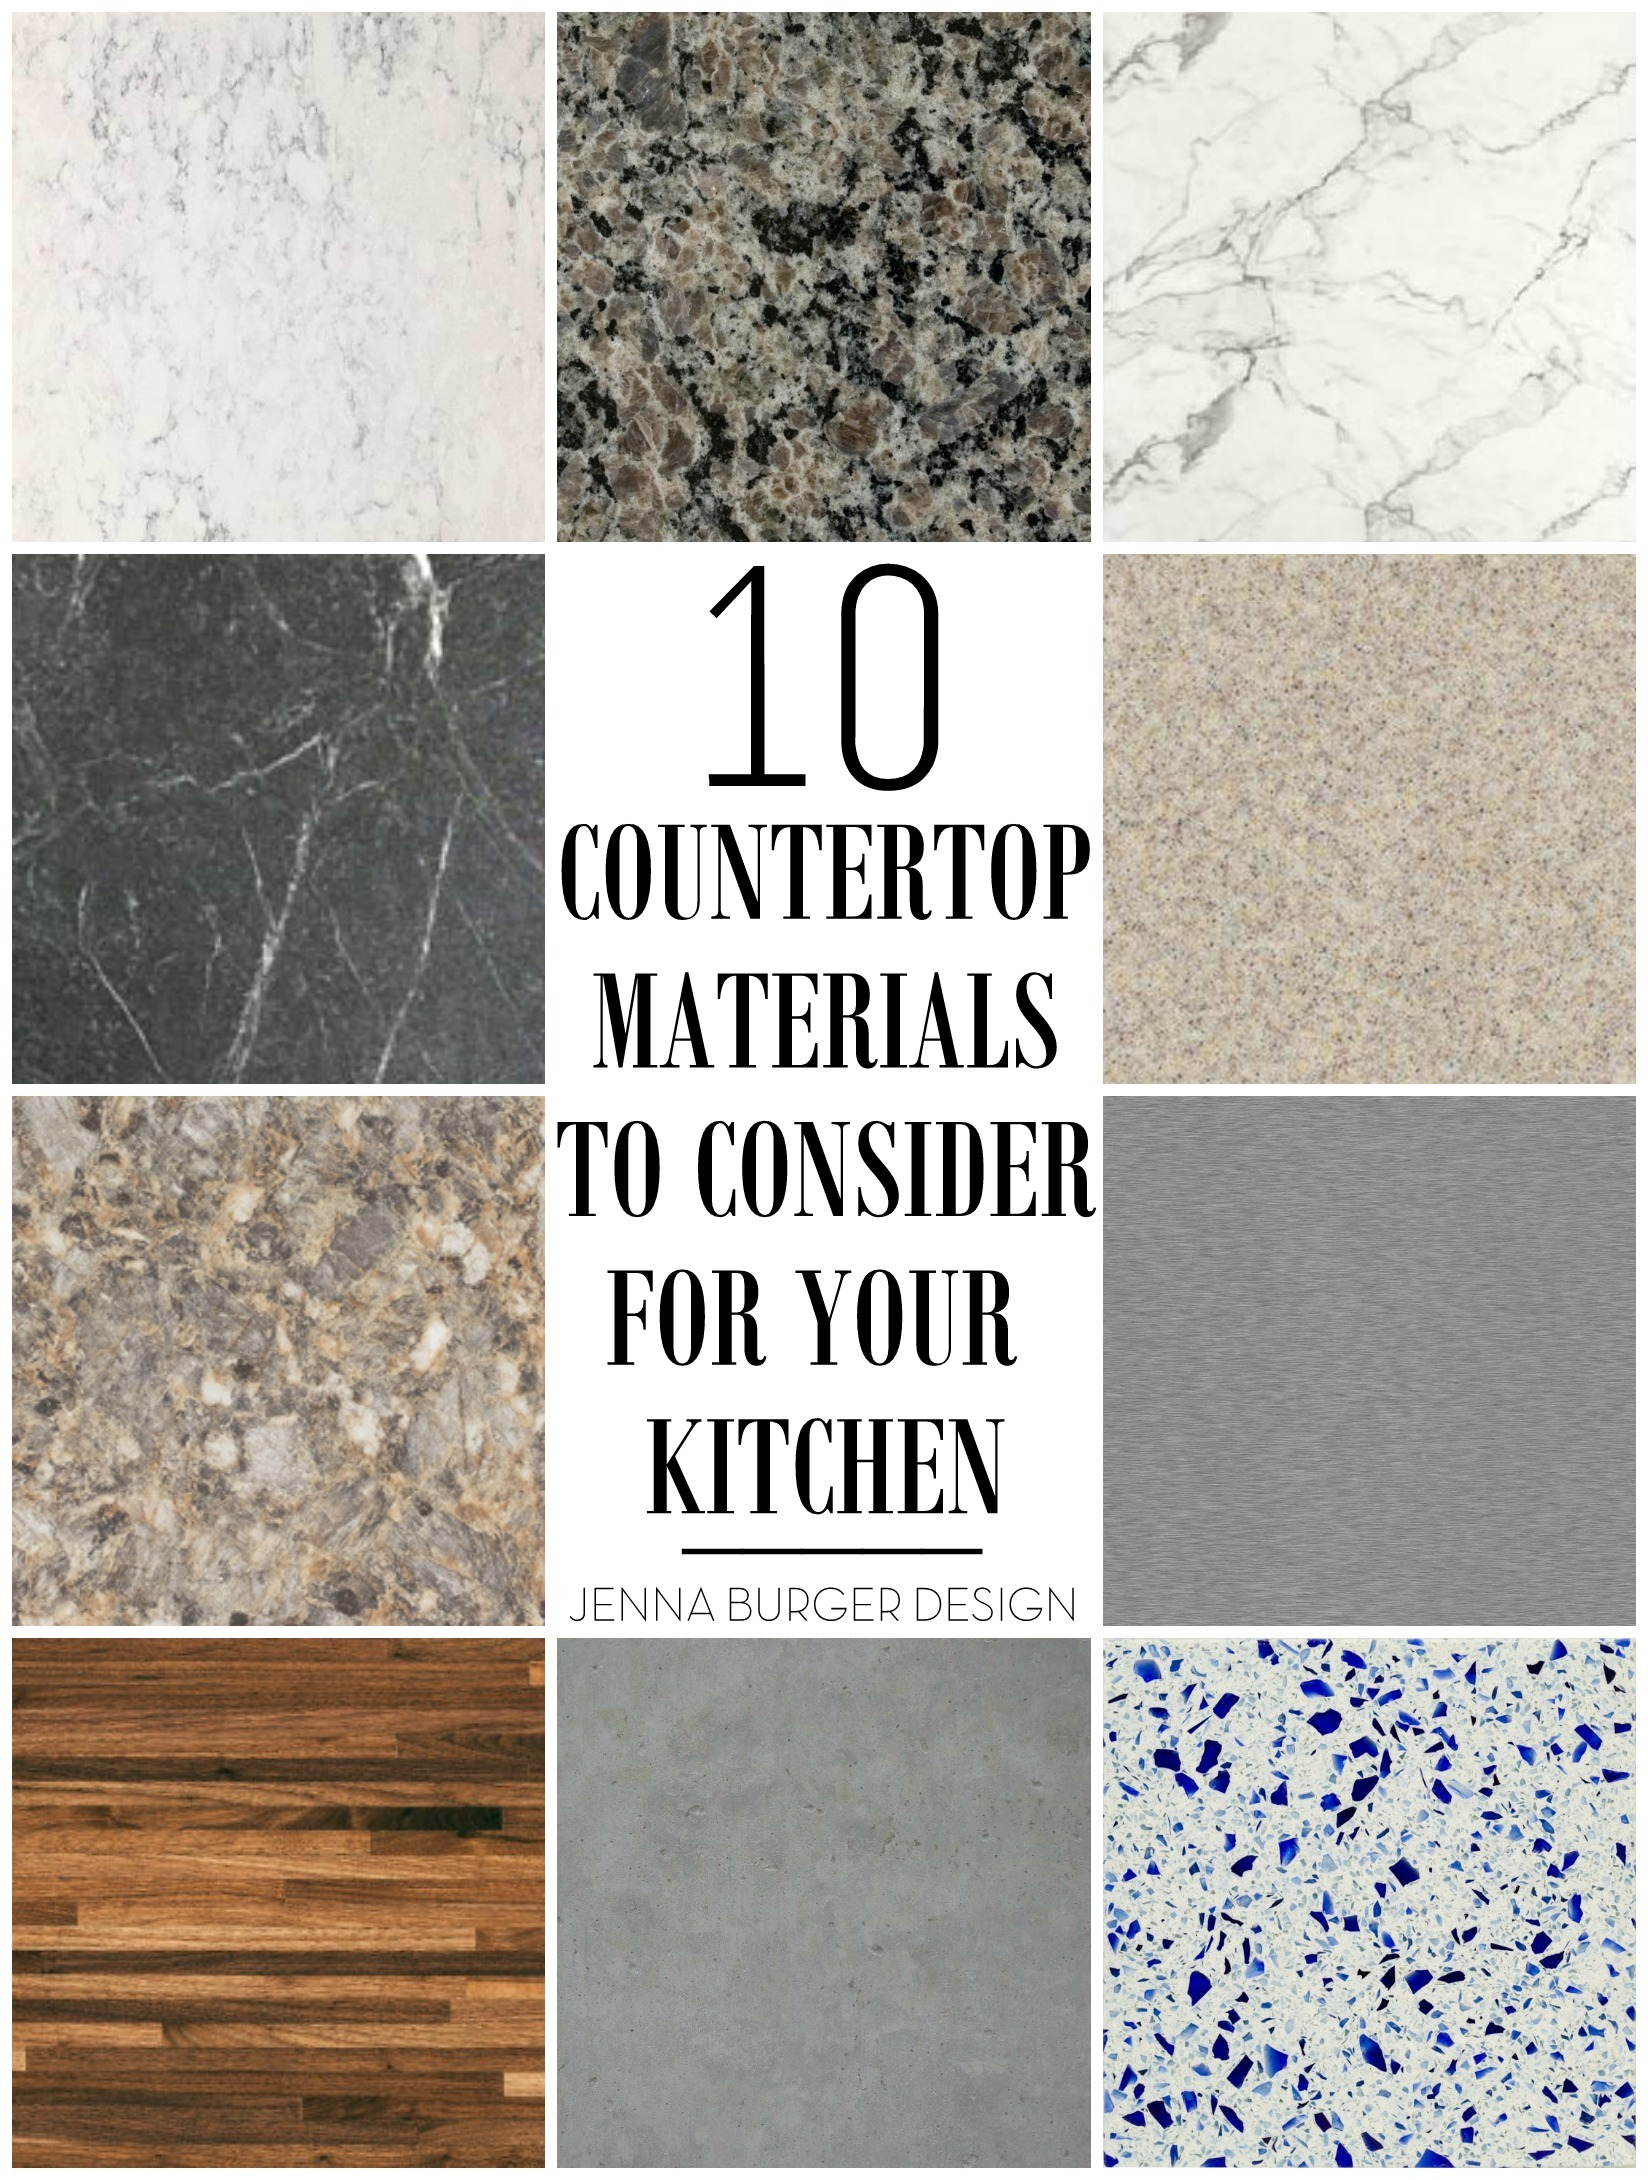 10 countertop materials to consider for the kitchen jenna burger. Black Bedroom Furniture Sets. Home Design Ideas